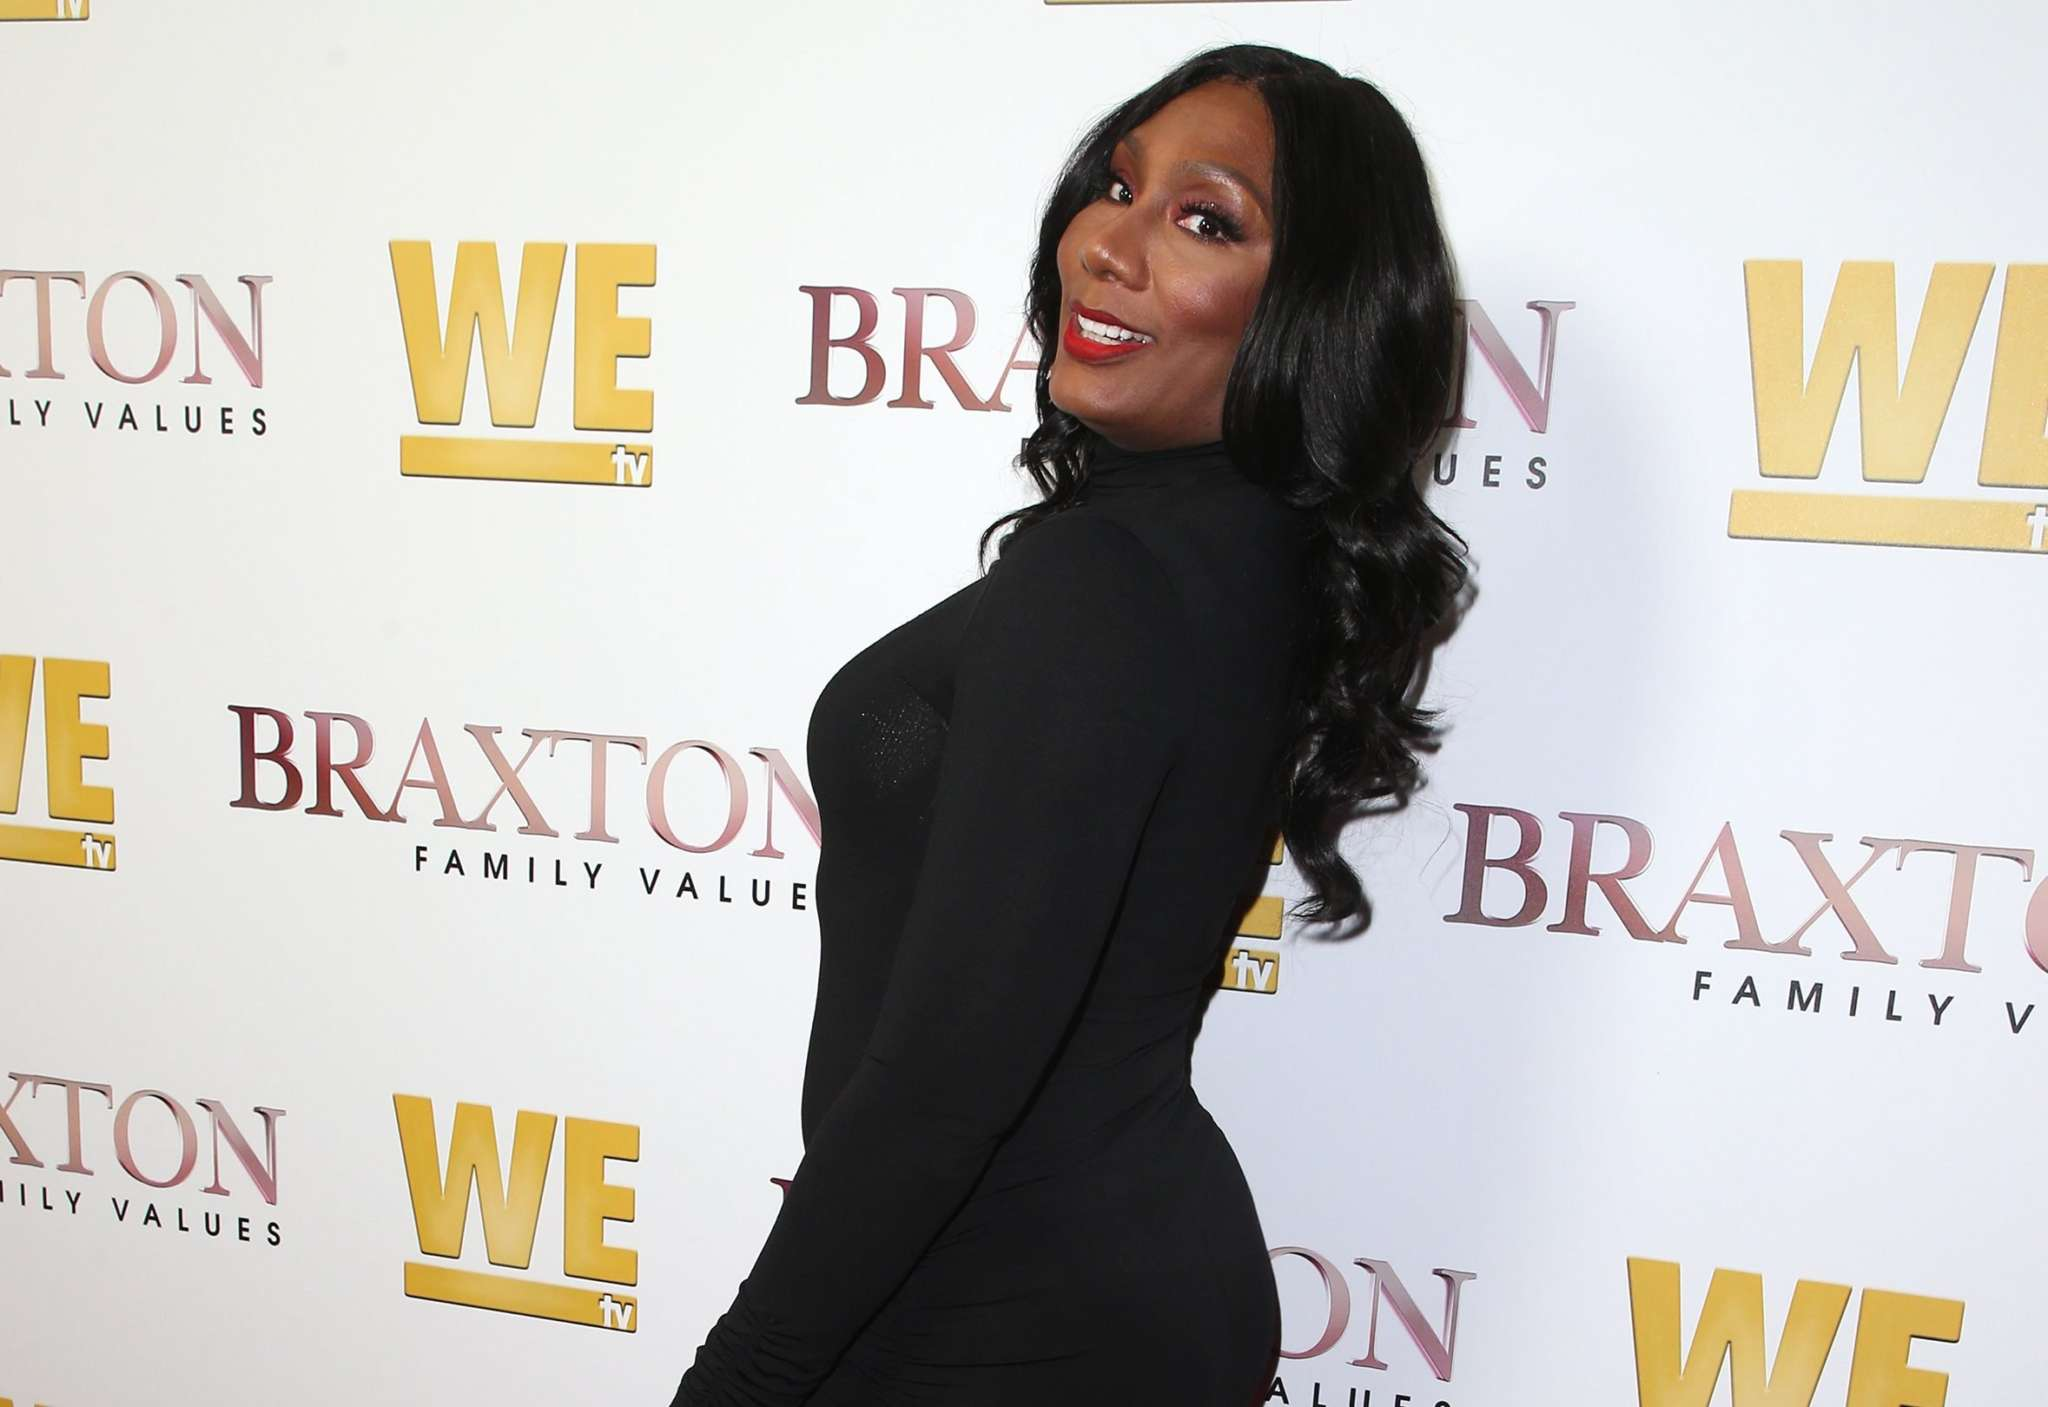 towanda-braxton-drops-precious-advice-for-fans-about-trusting-yourself